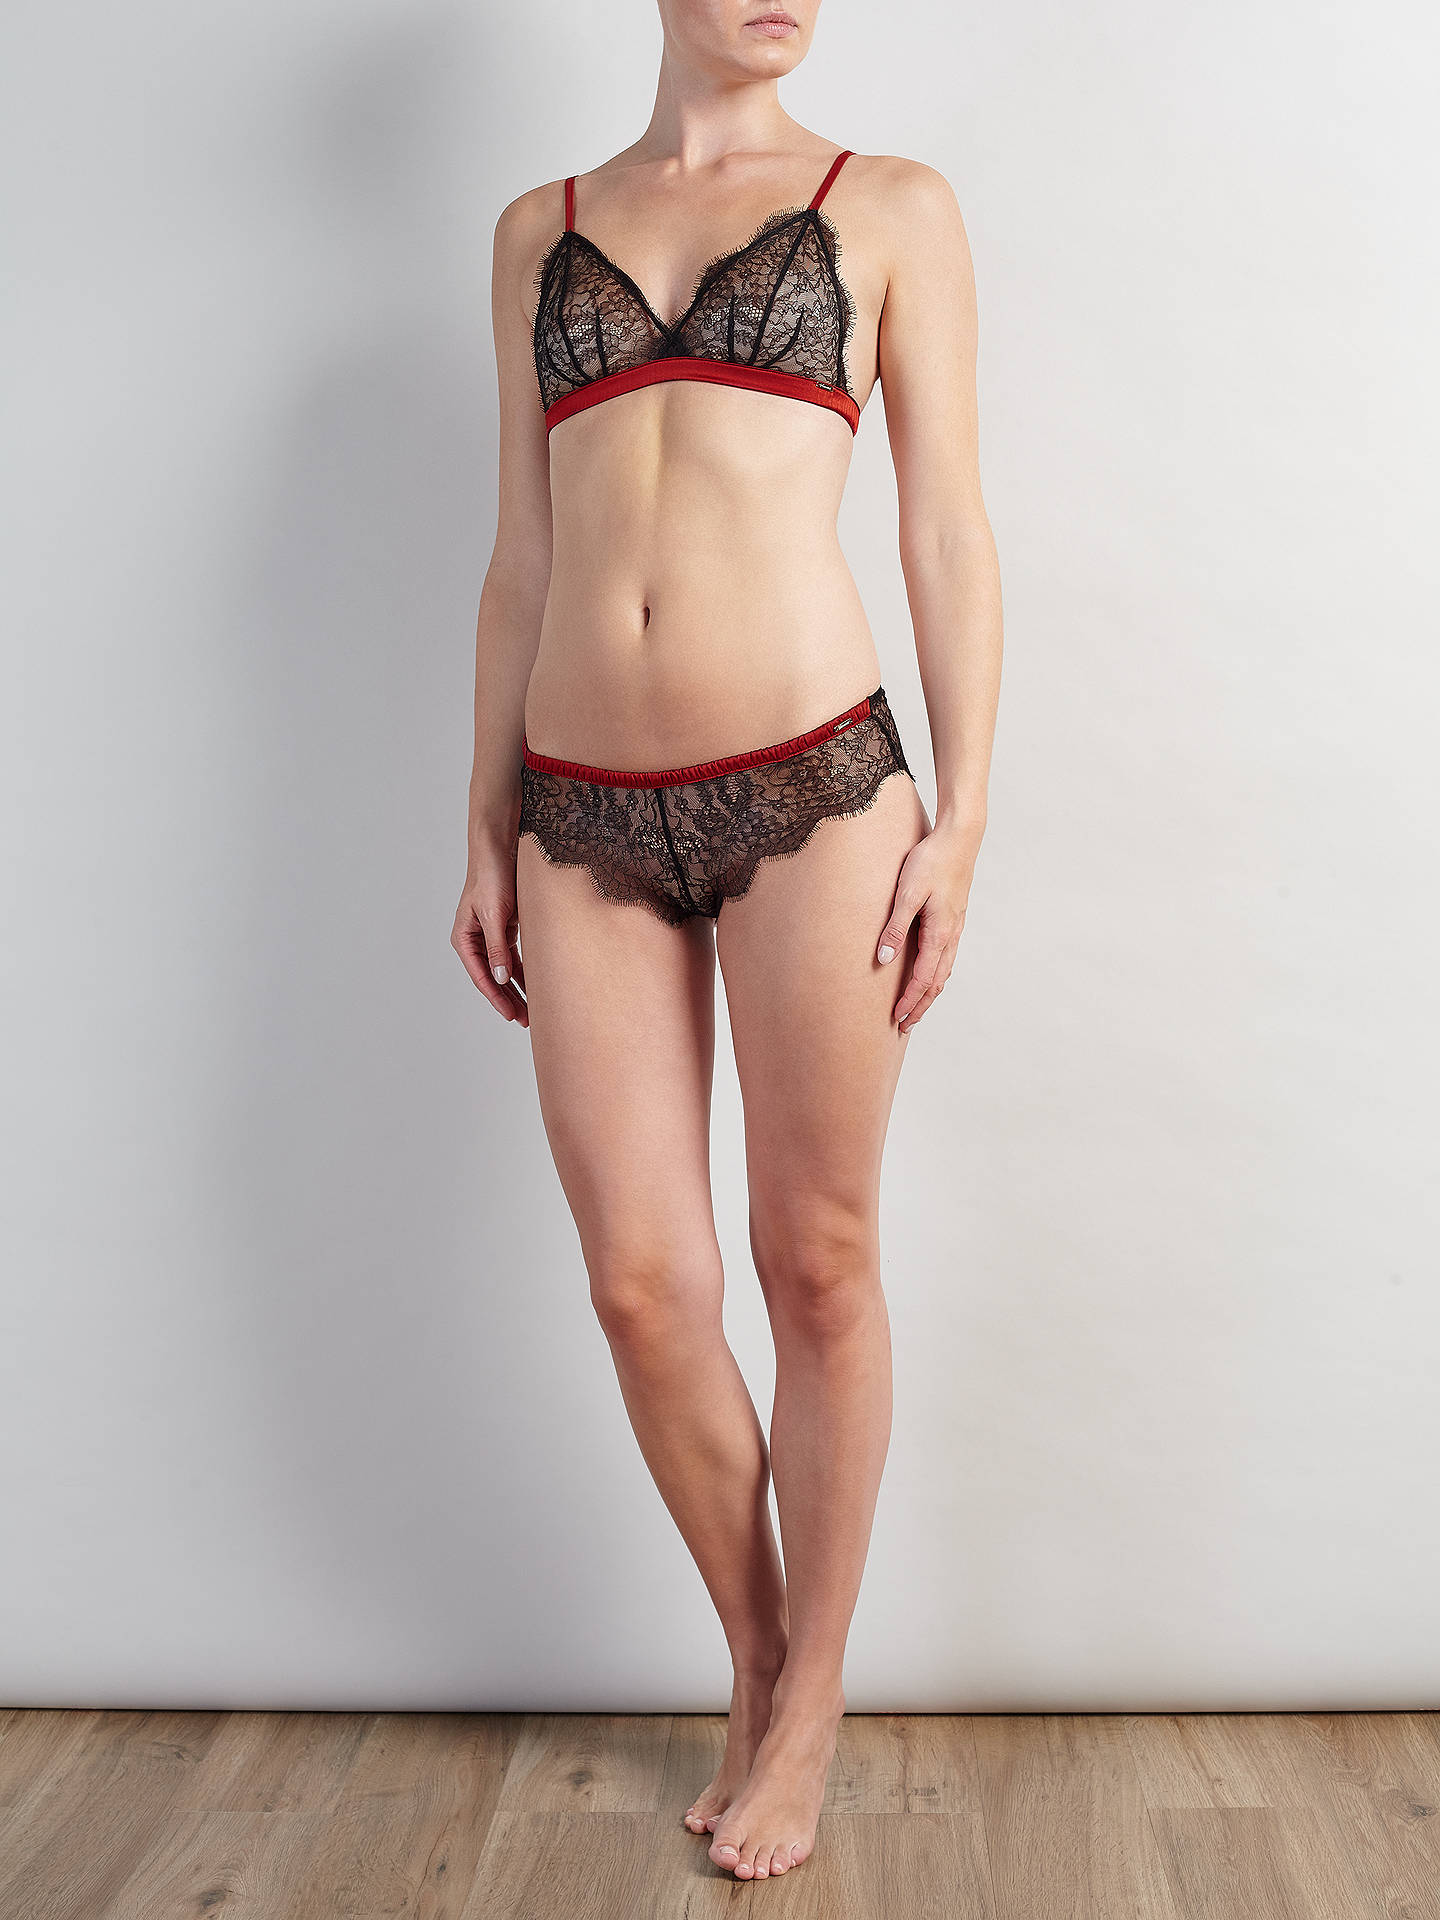 074d230c15d09 ... BuySomerset by Alice Temperley Mia Triangle Soft Cup Lace Bra and Brief  Set